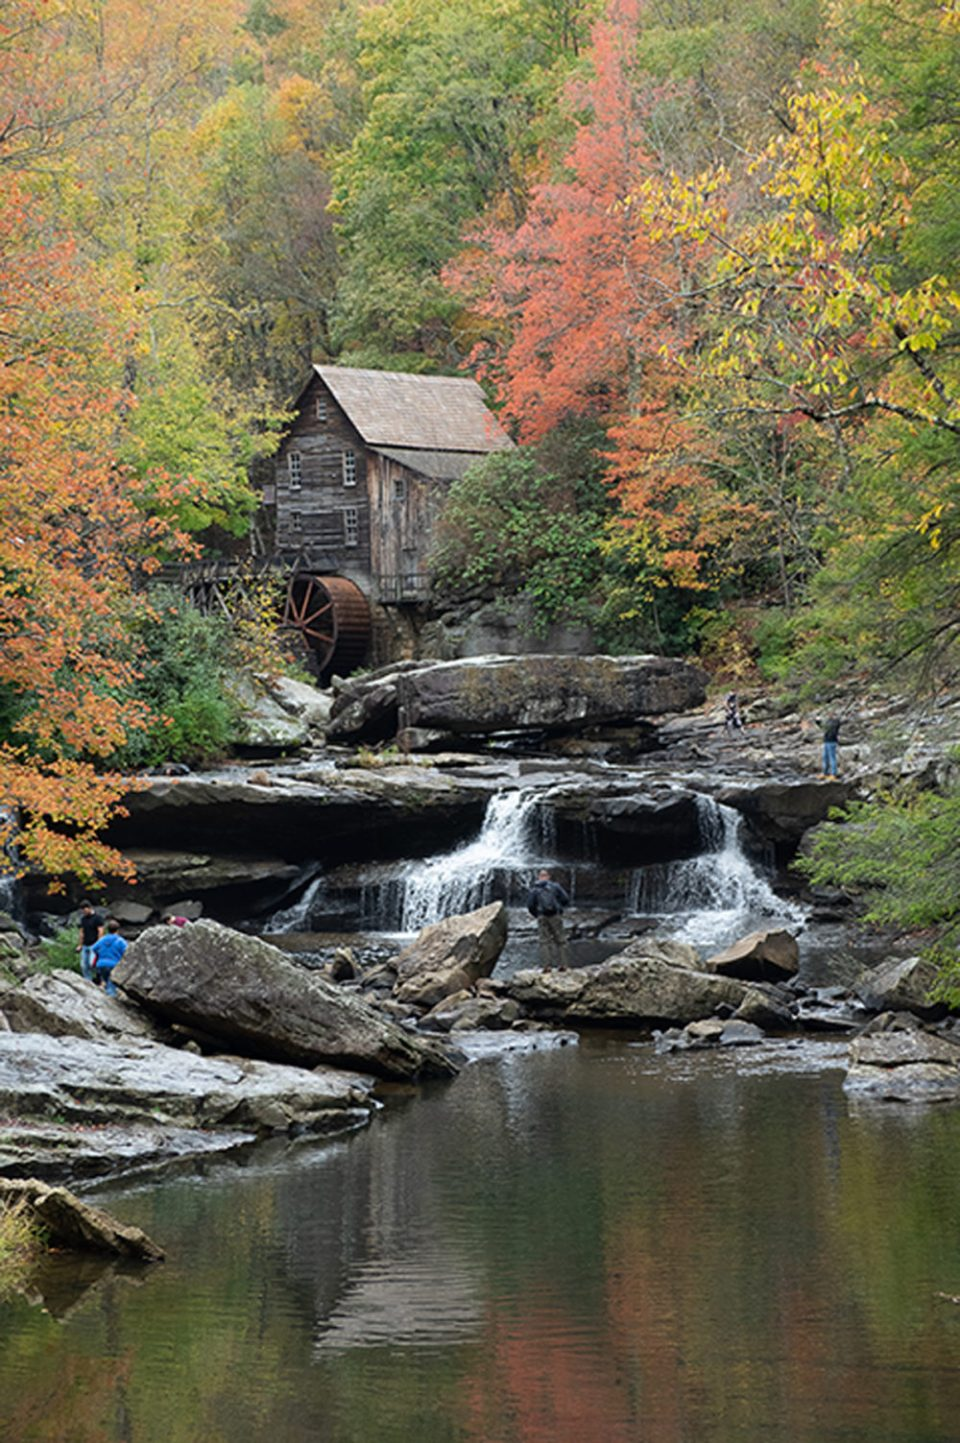 Spectacular autumn color surrounds the historic Glade Creek grist mill in Babcock State Park near Fayetteville, WV.